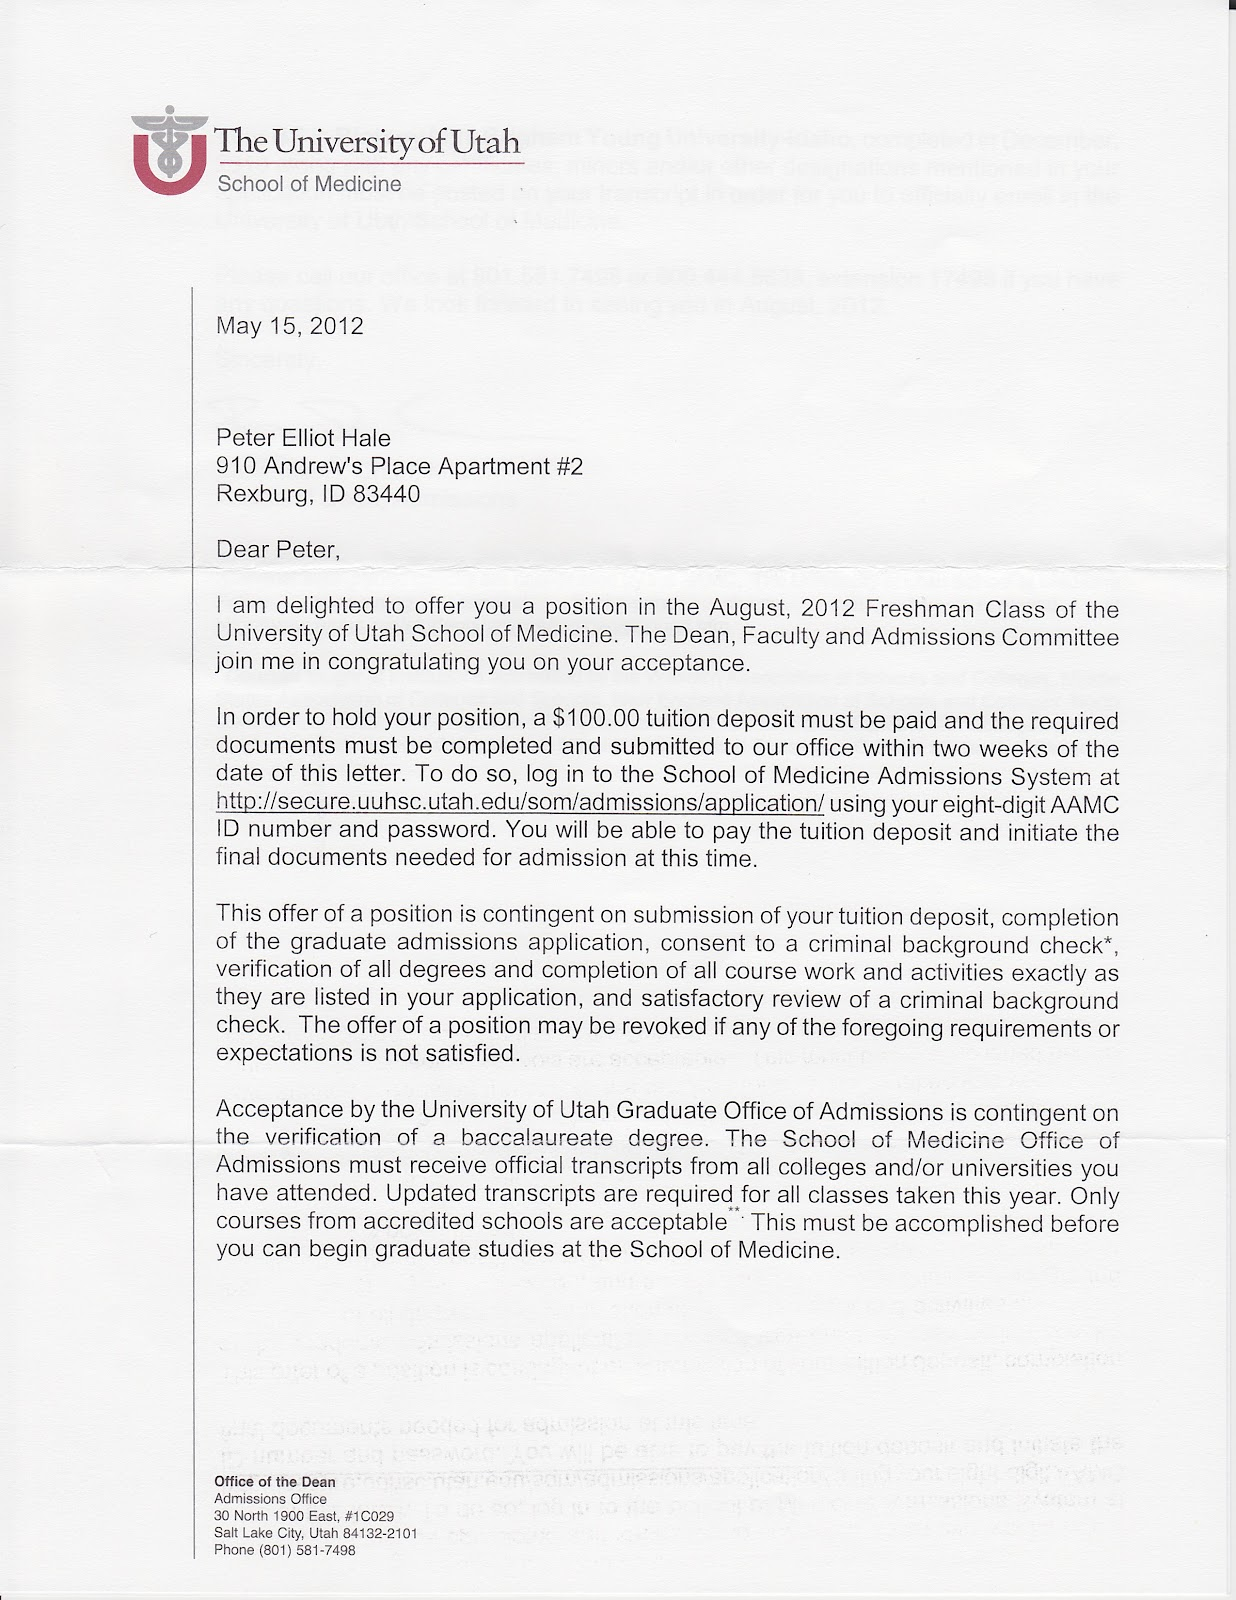 when do uc acceptance letters come the pioneering letter from in peter received an acceptance letter to the university of